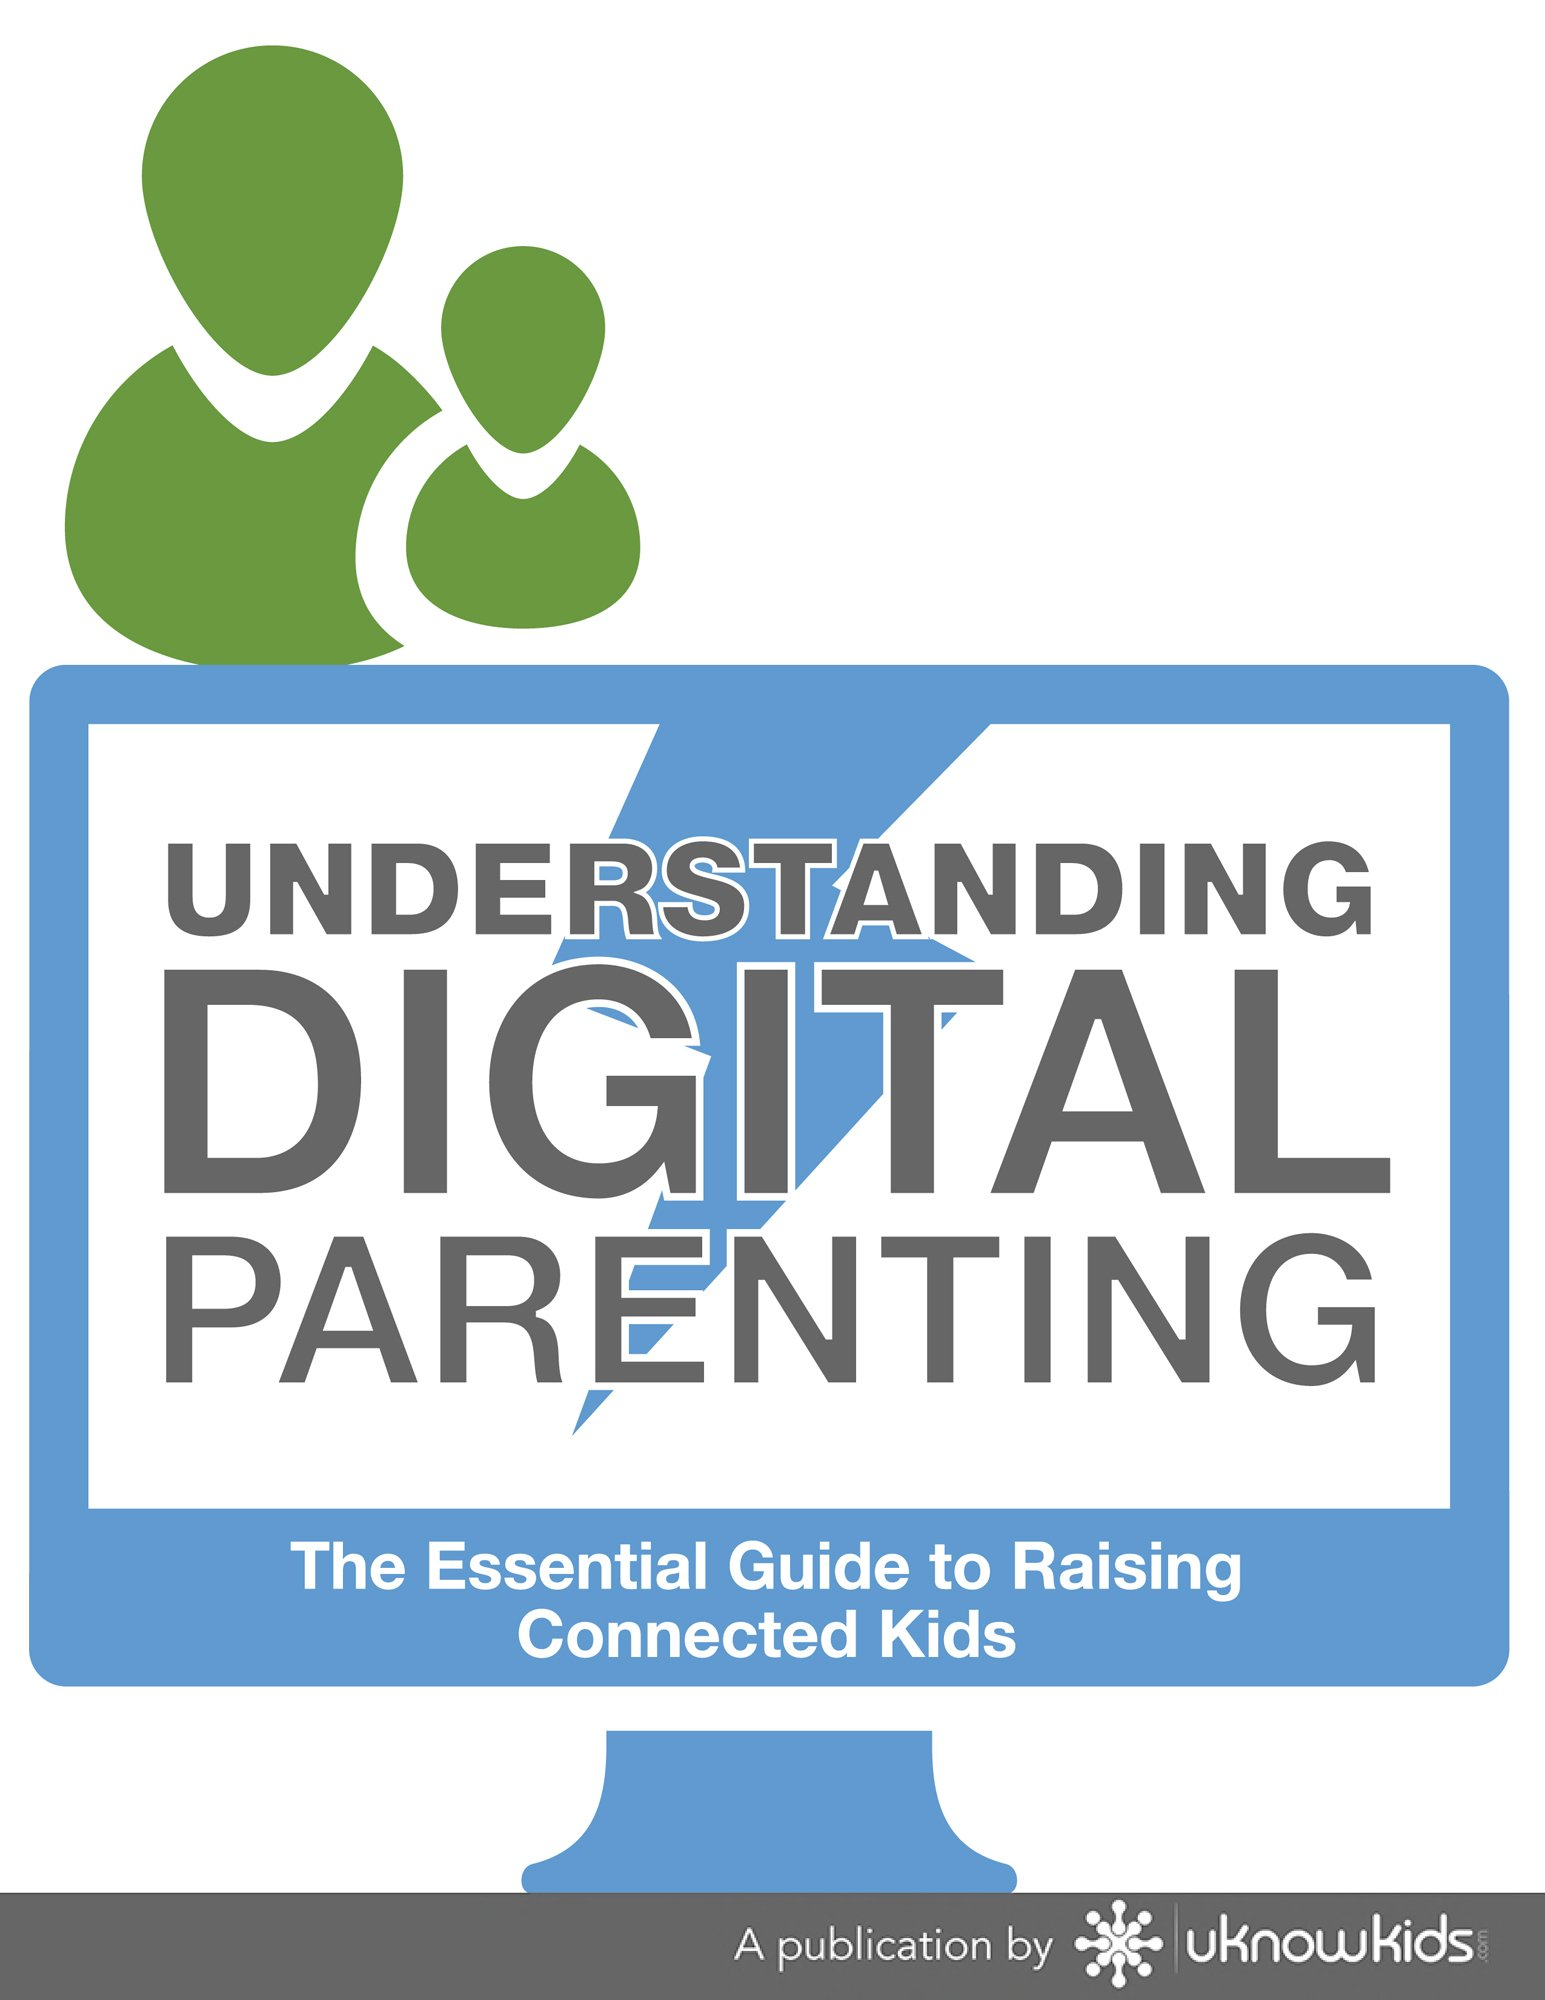 Digital Parenting: Achieving a thorough understanding